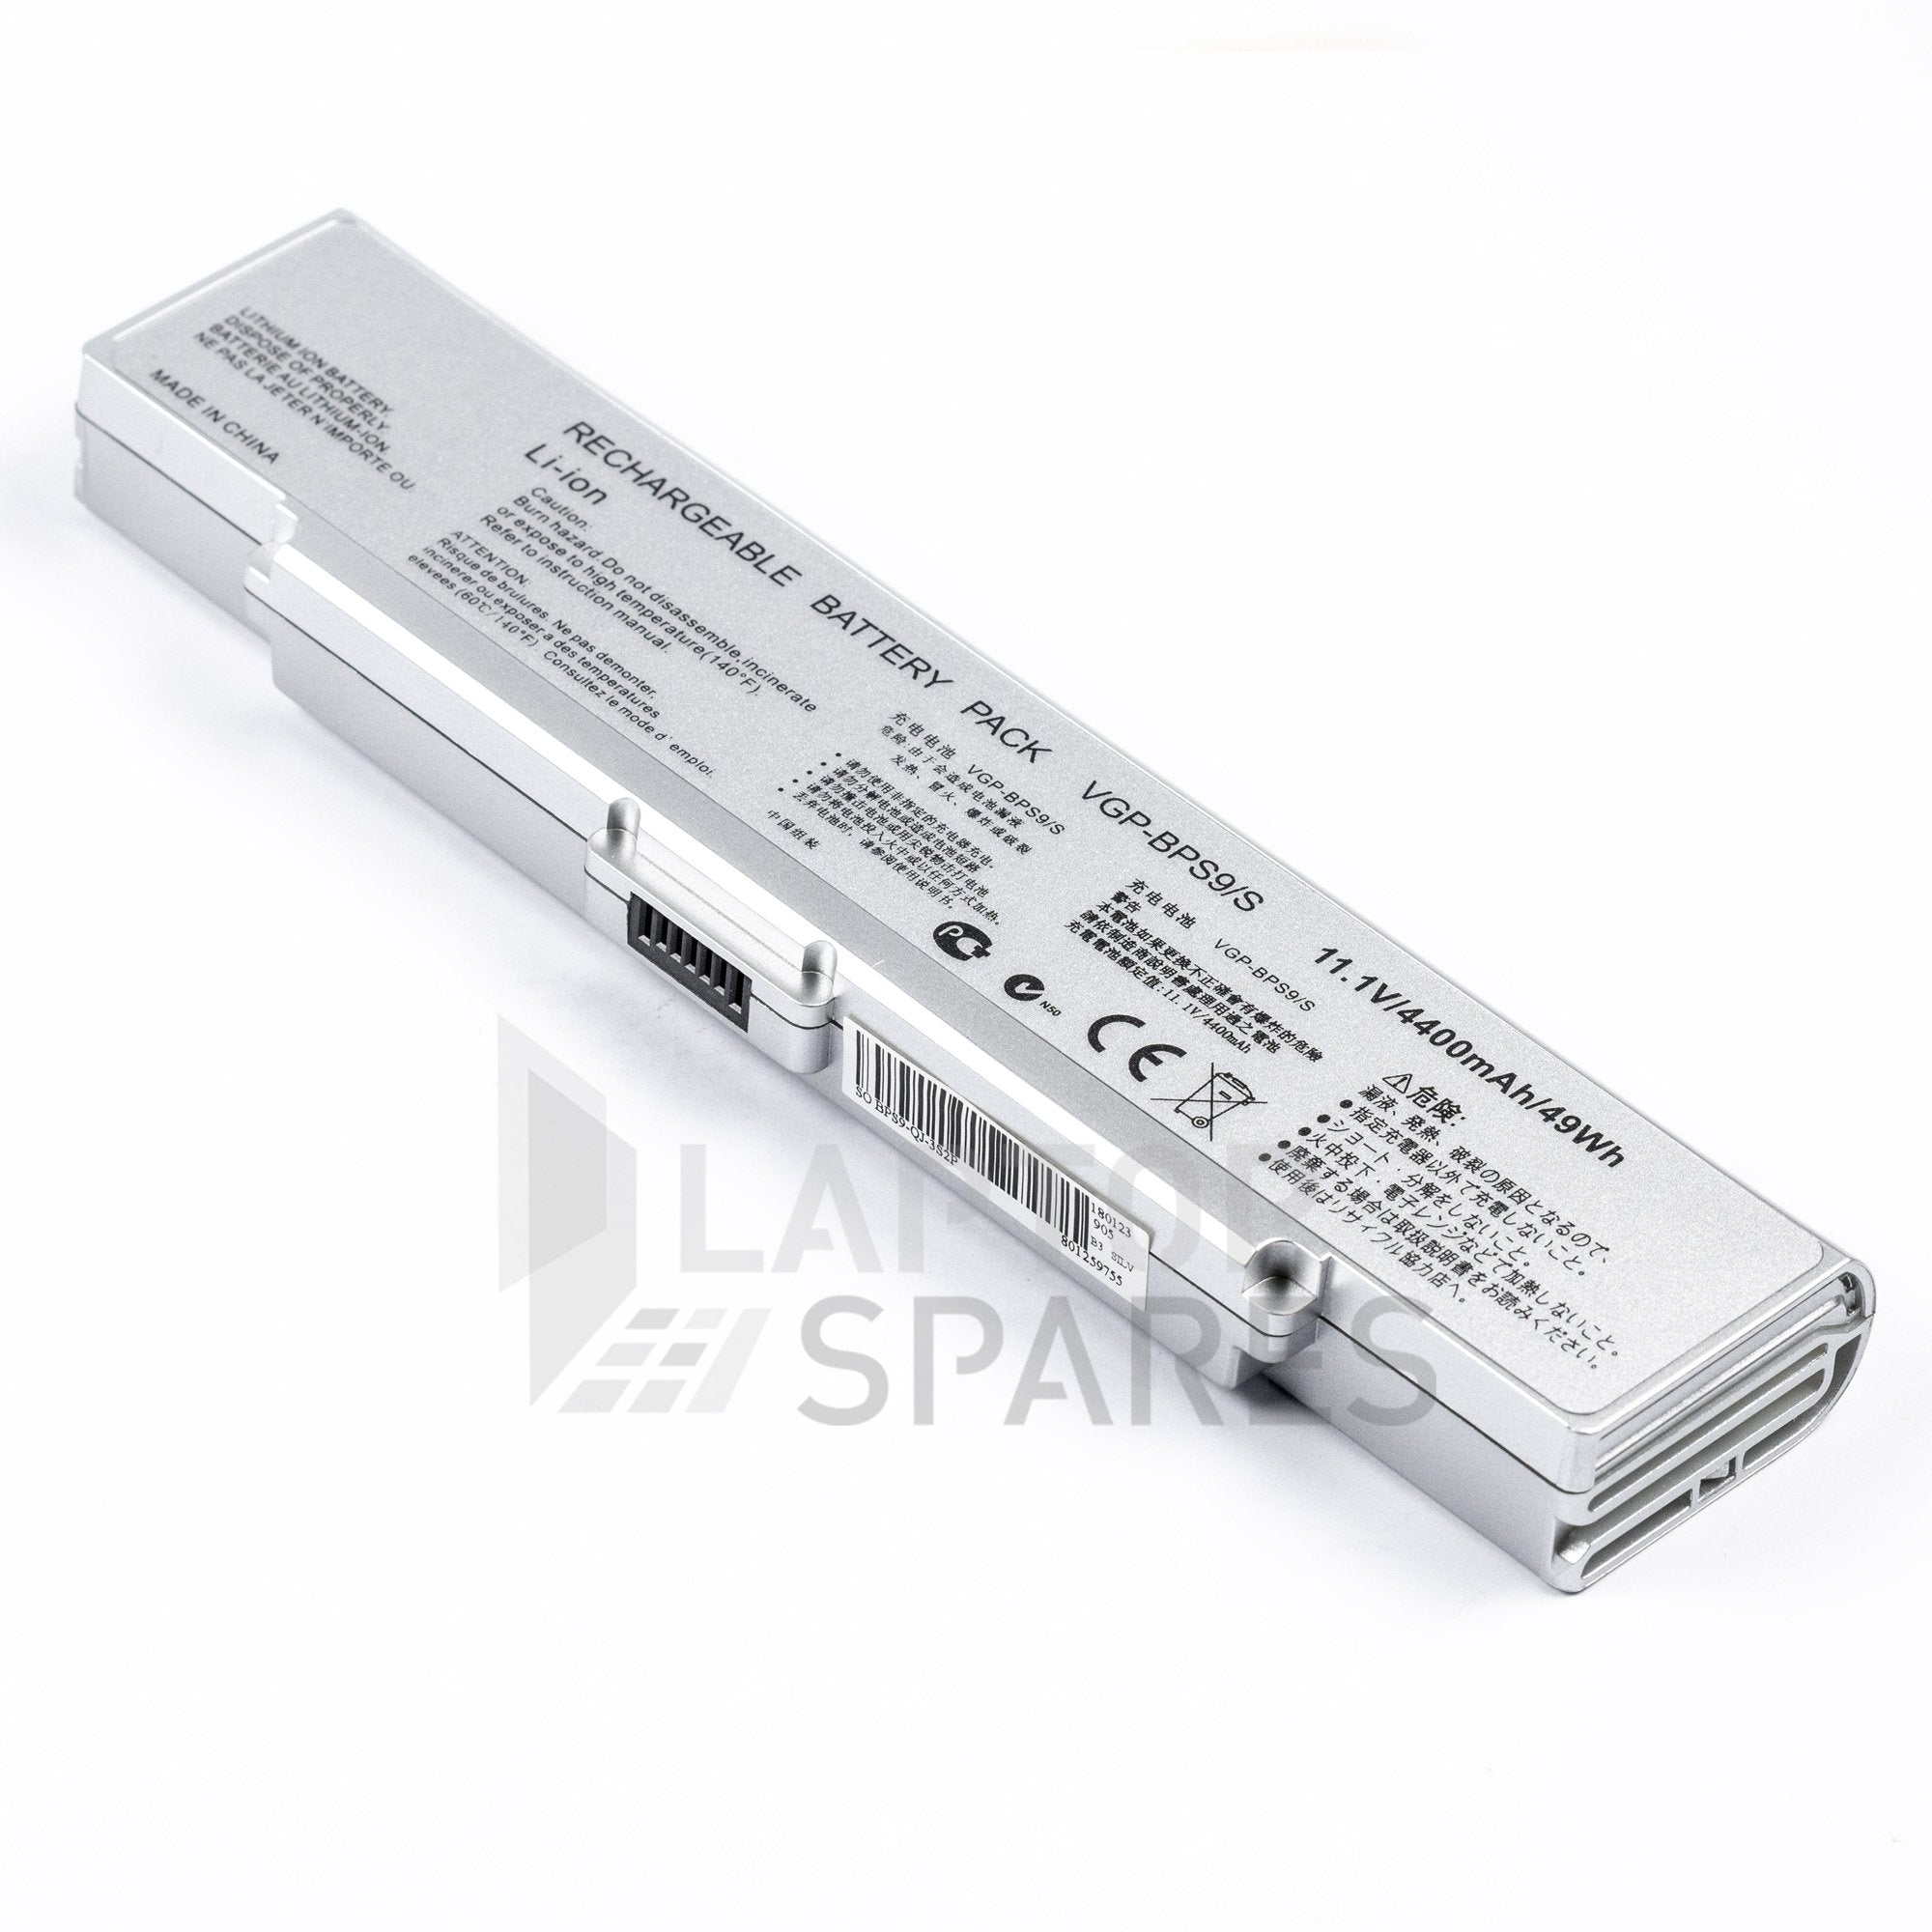 Sony VAIO VGN-CR11S/P 4400mAh 6 Cell Battery